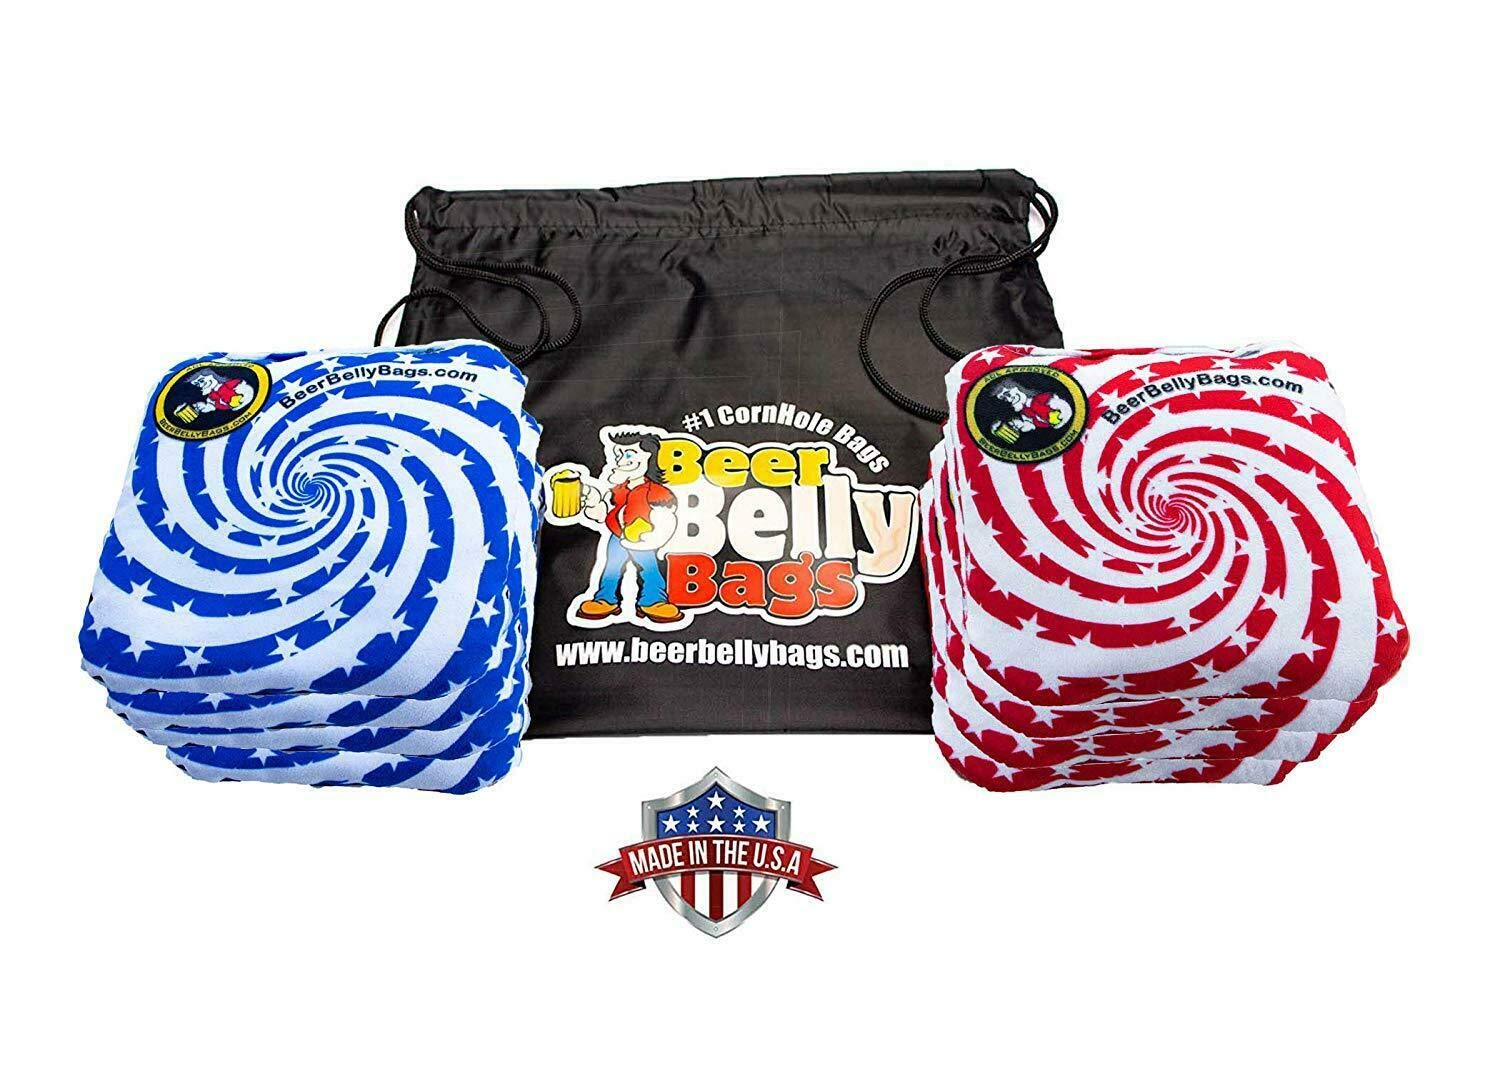 Beer Belly Bags Cornhole - Performance Series 8 Bags ACL Approved Resin Filled - Double Sided - Sticky Side   Slick Side(Stars & Stripes) by Beer Belly Bags